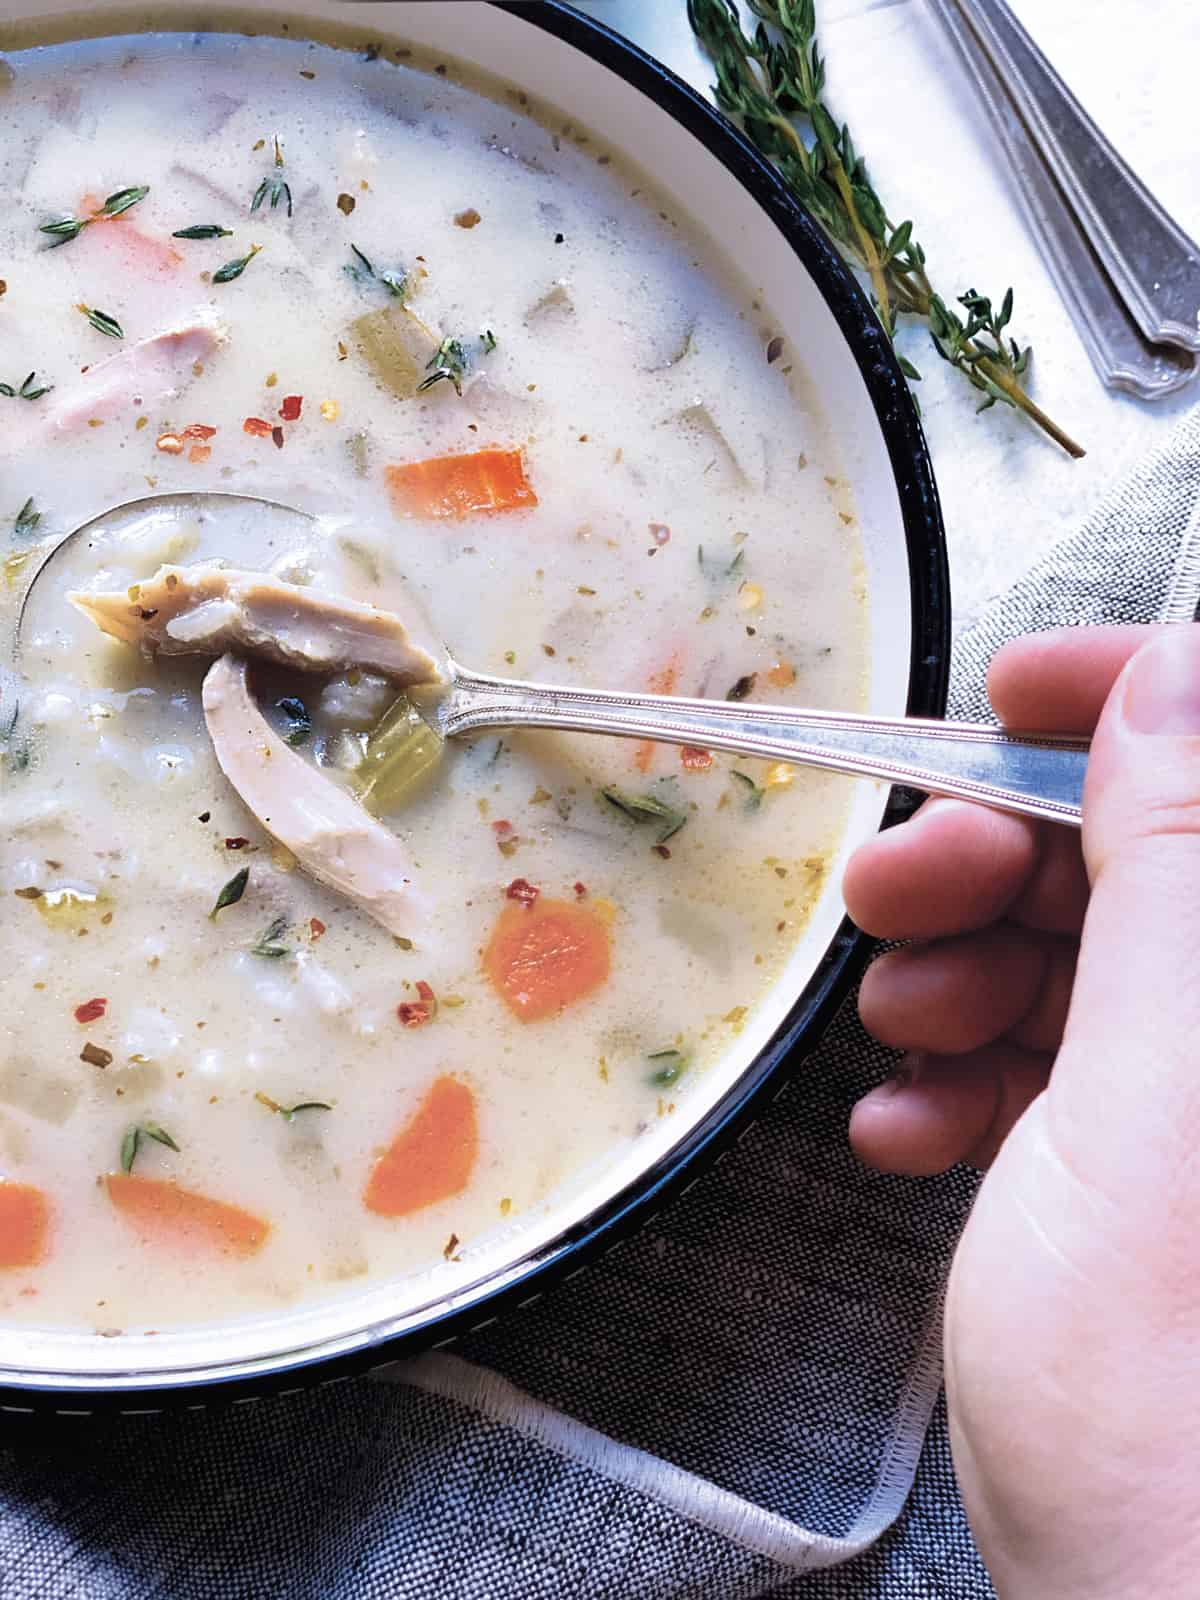 A bowl with lemon chicken soup and a hand holding a spoon.